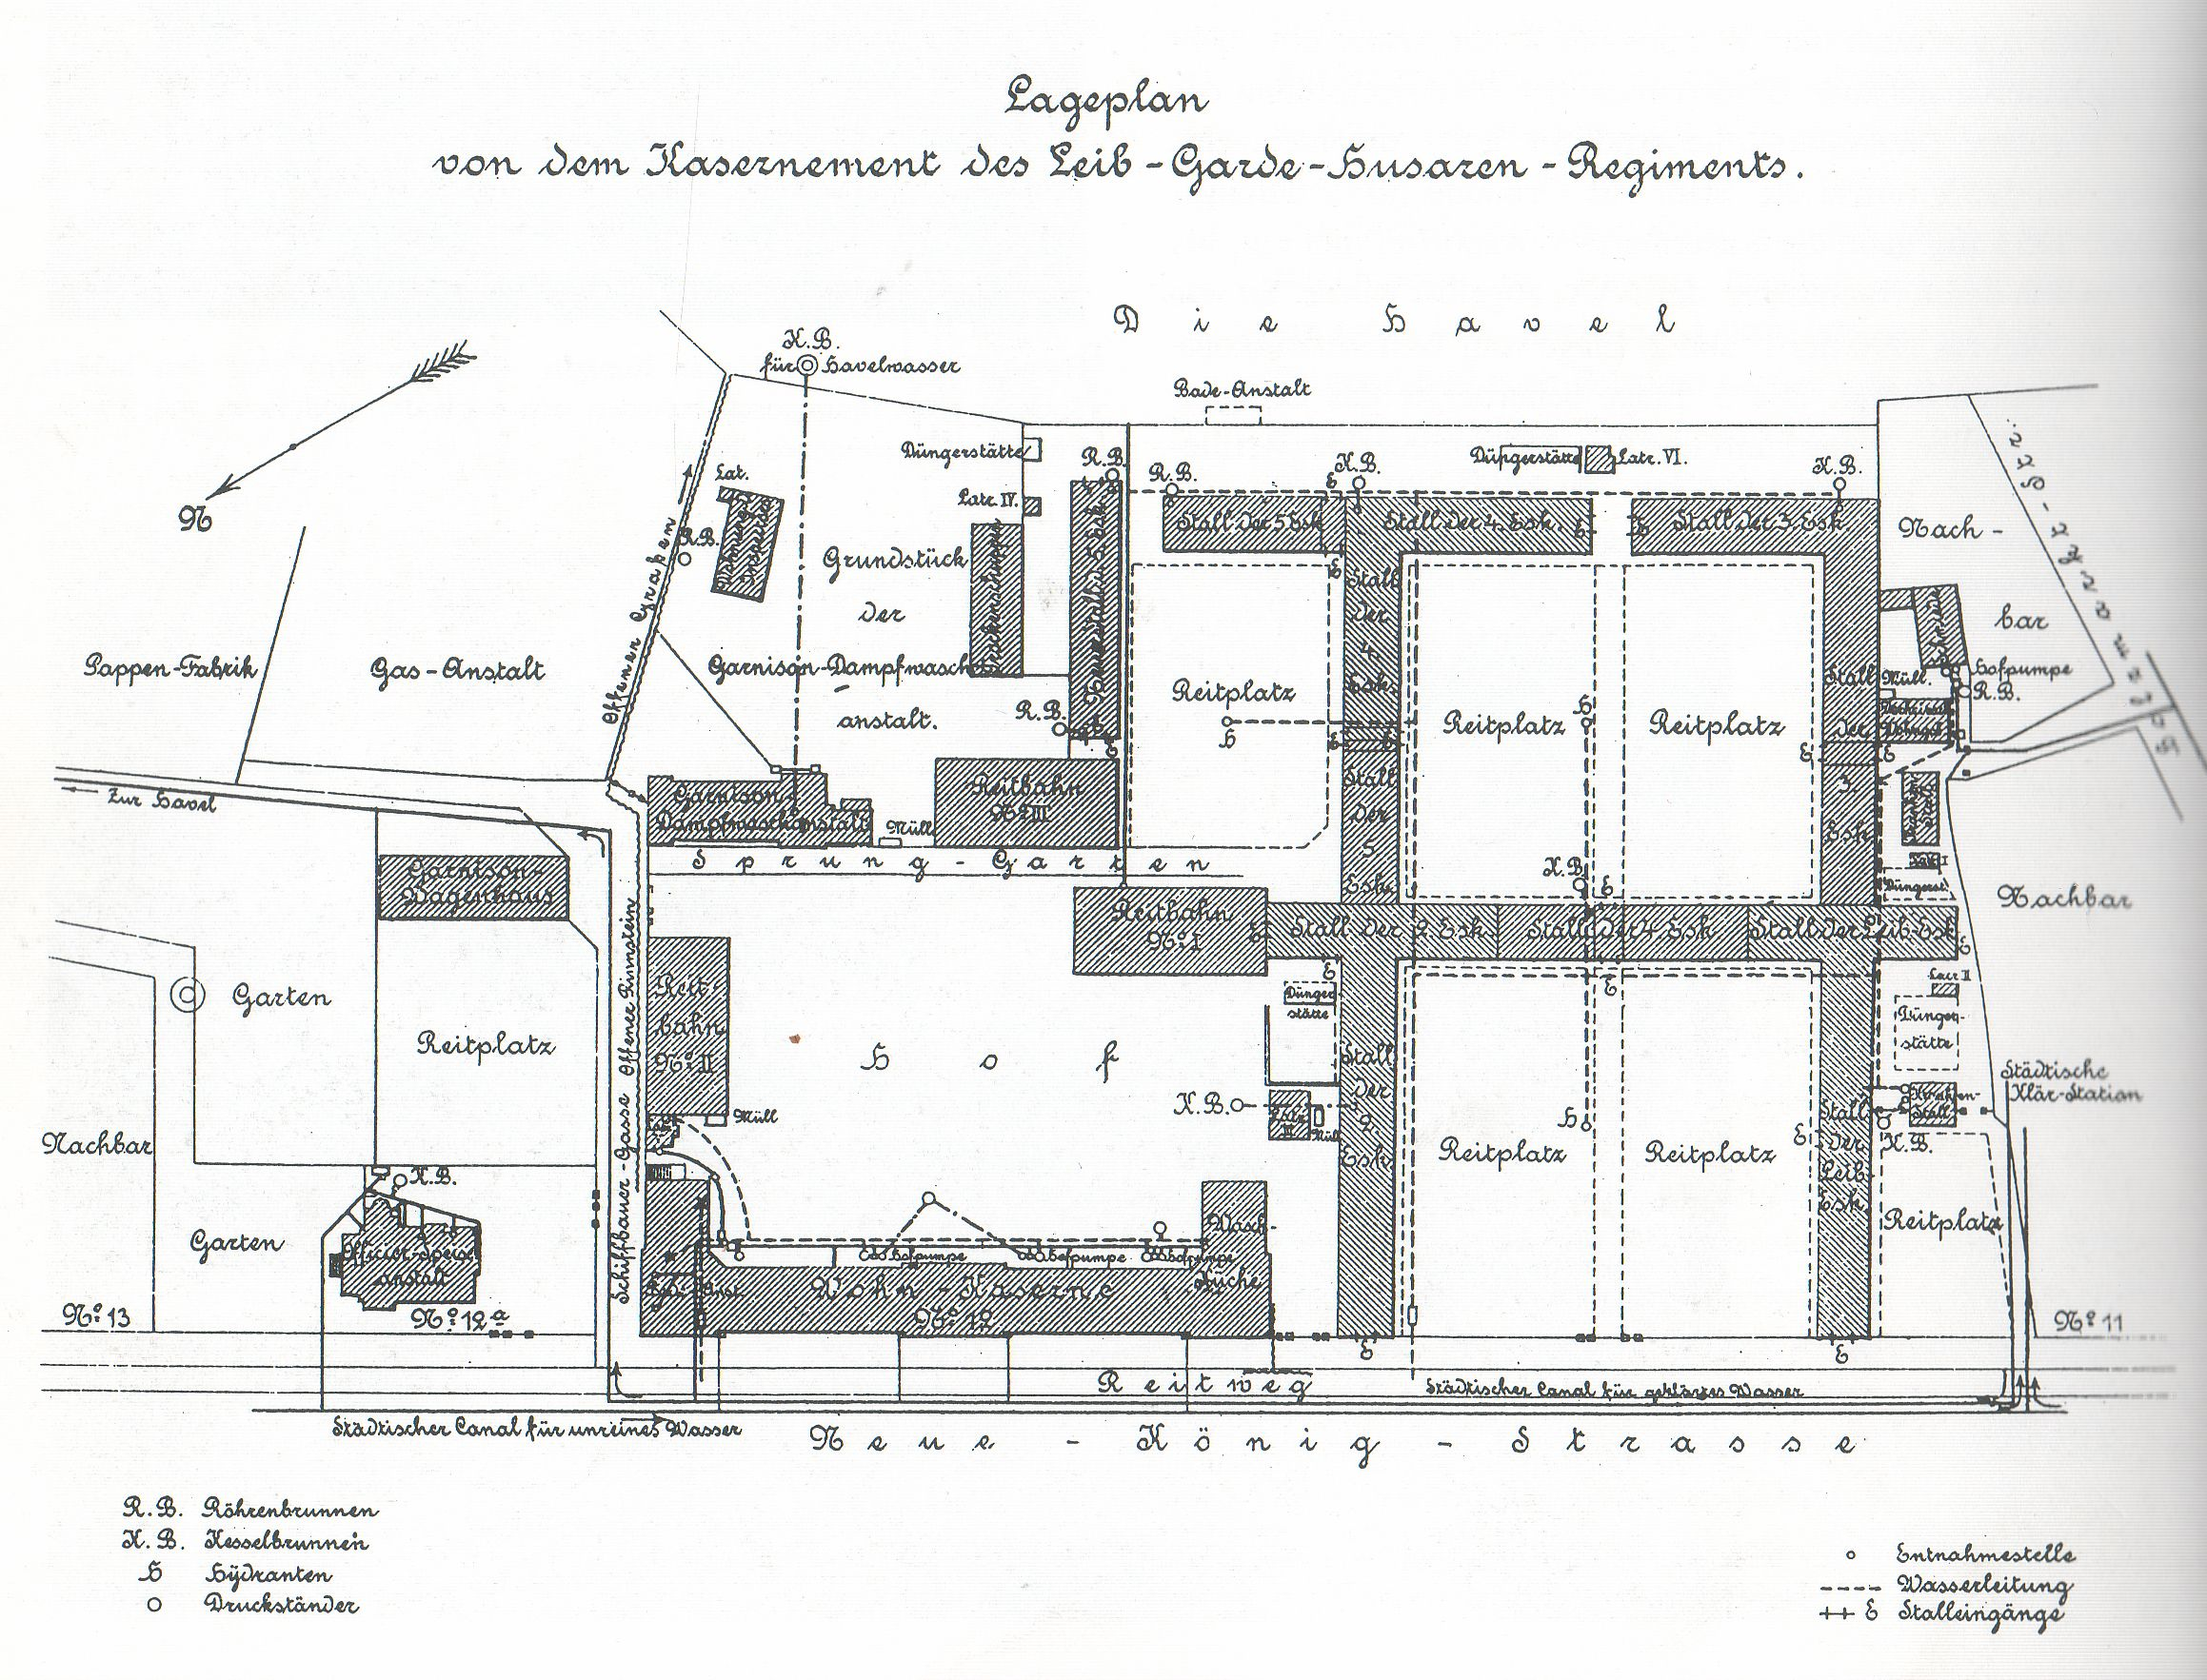 Map of the Leib Garde Hussar Garrison in Potsdam.